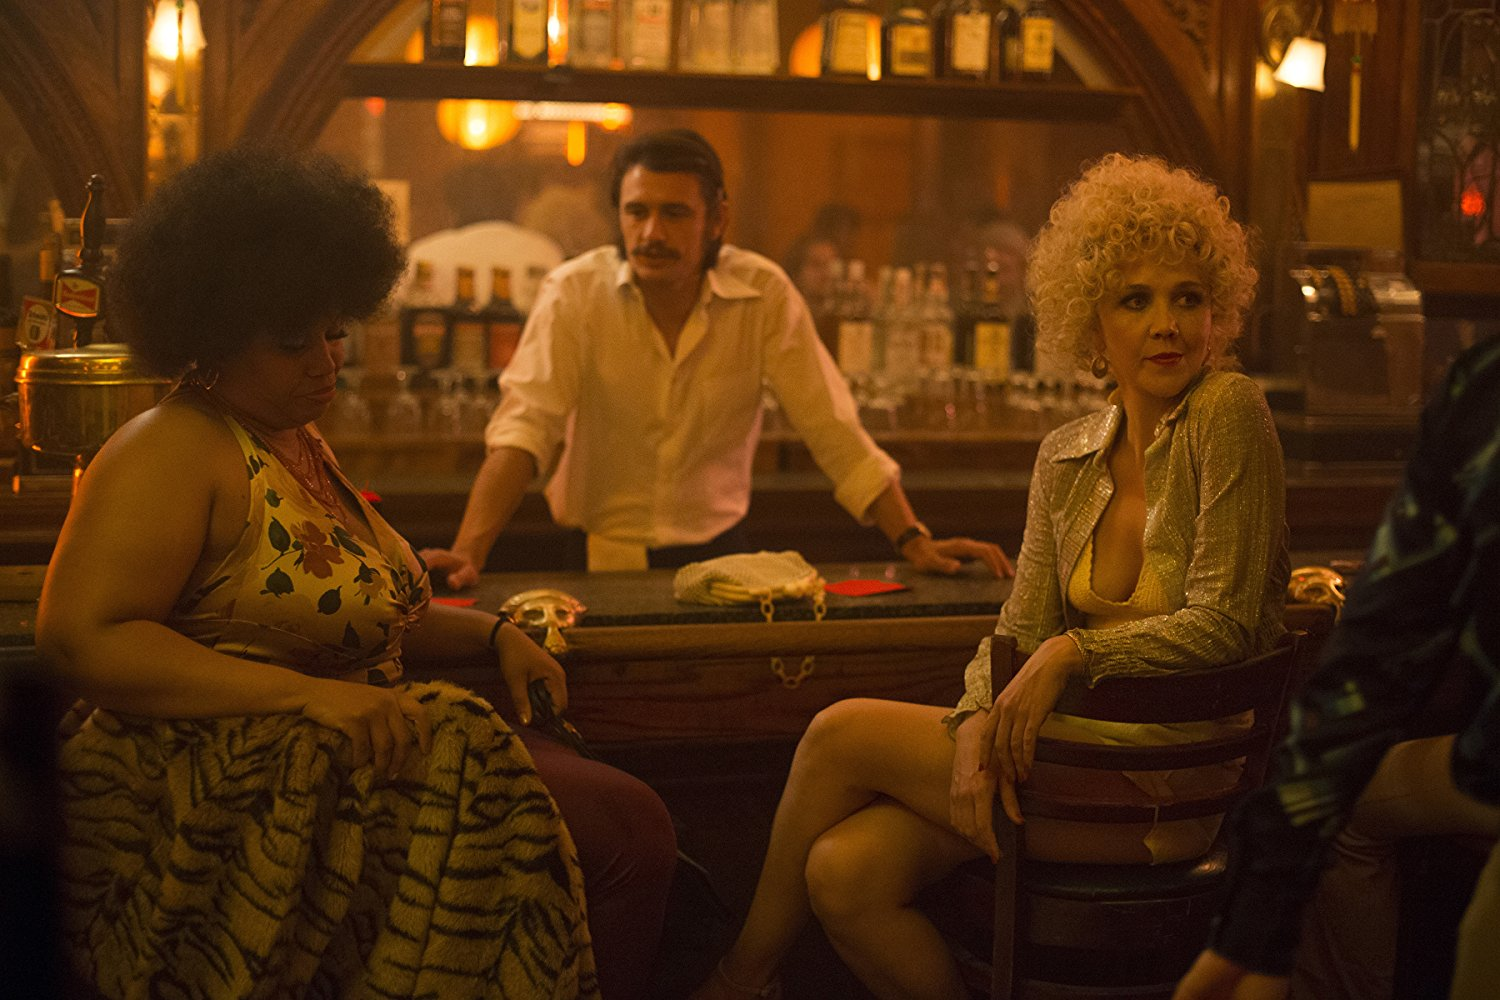 HBO renouvelle The Deuce la série de David Simon